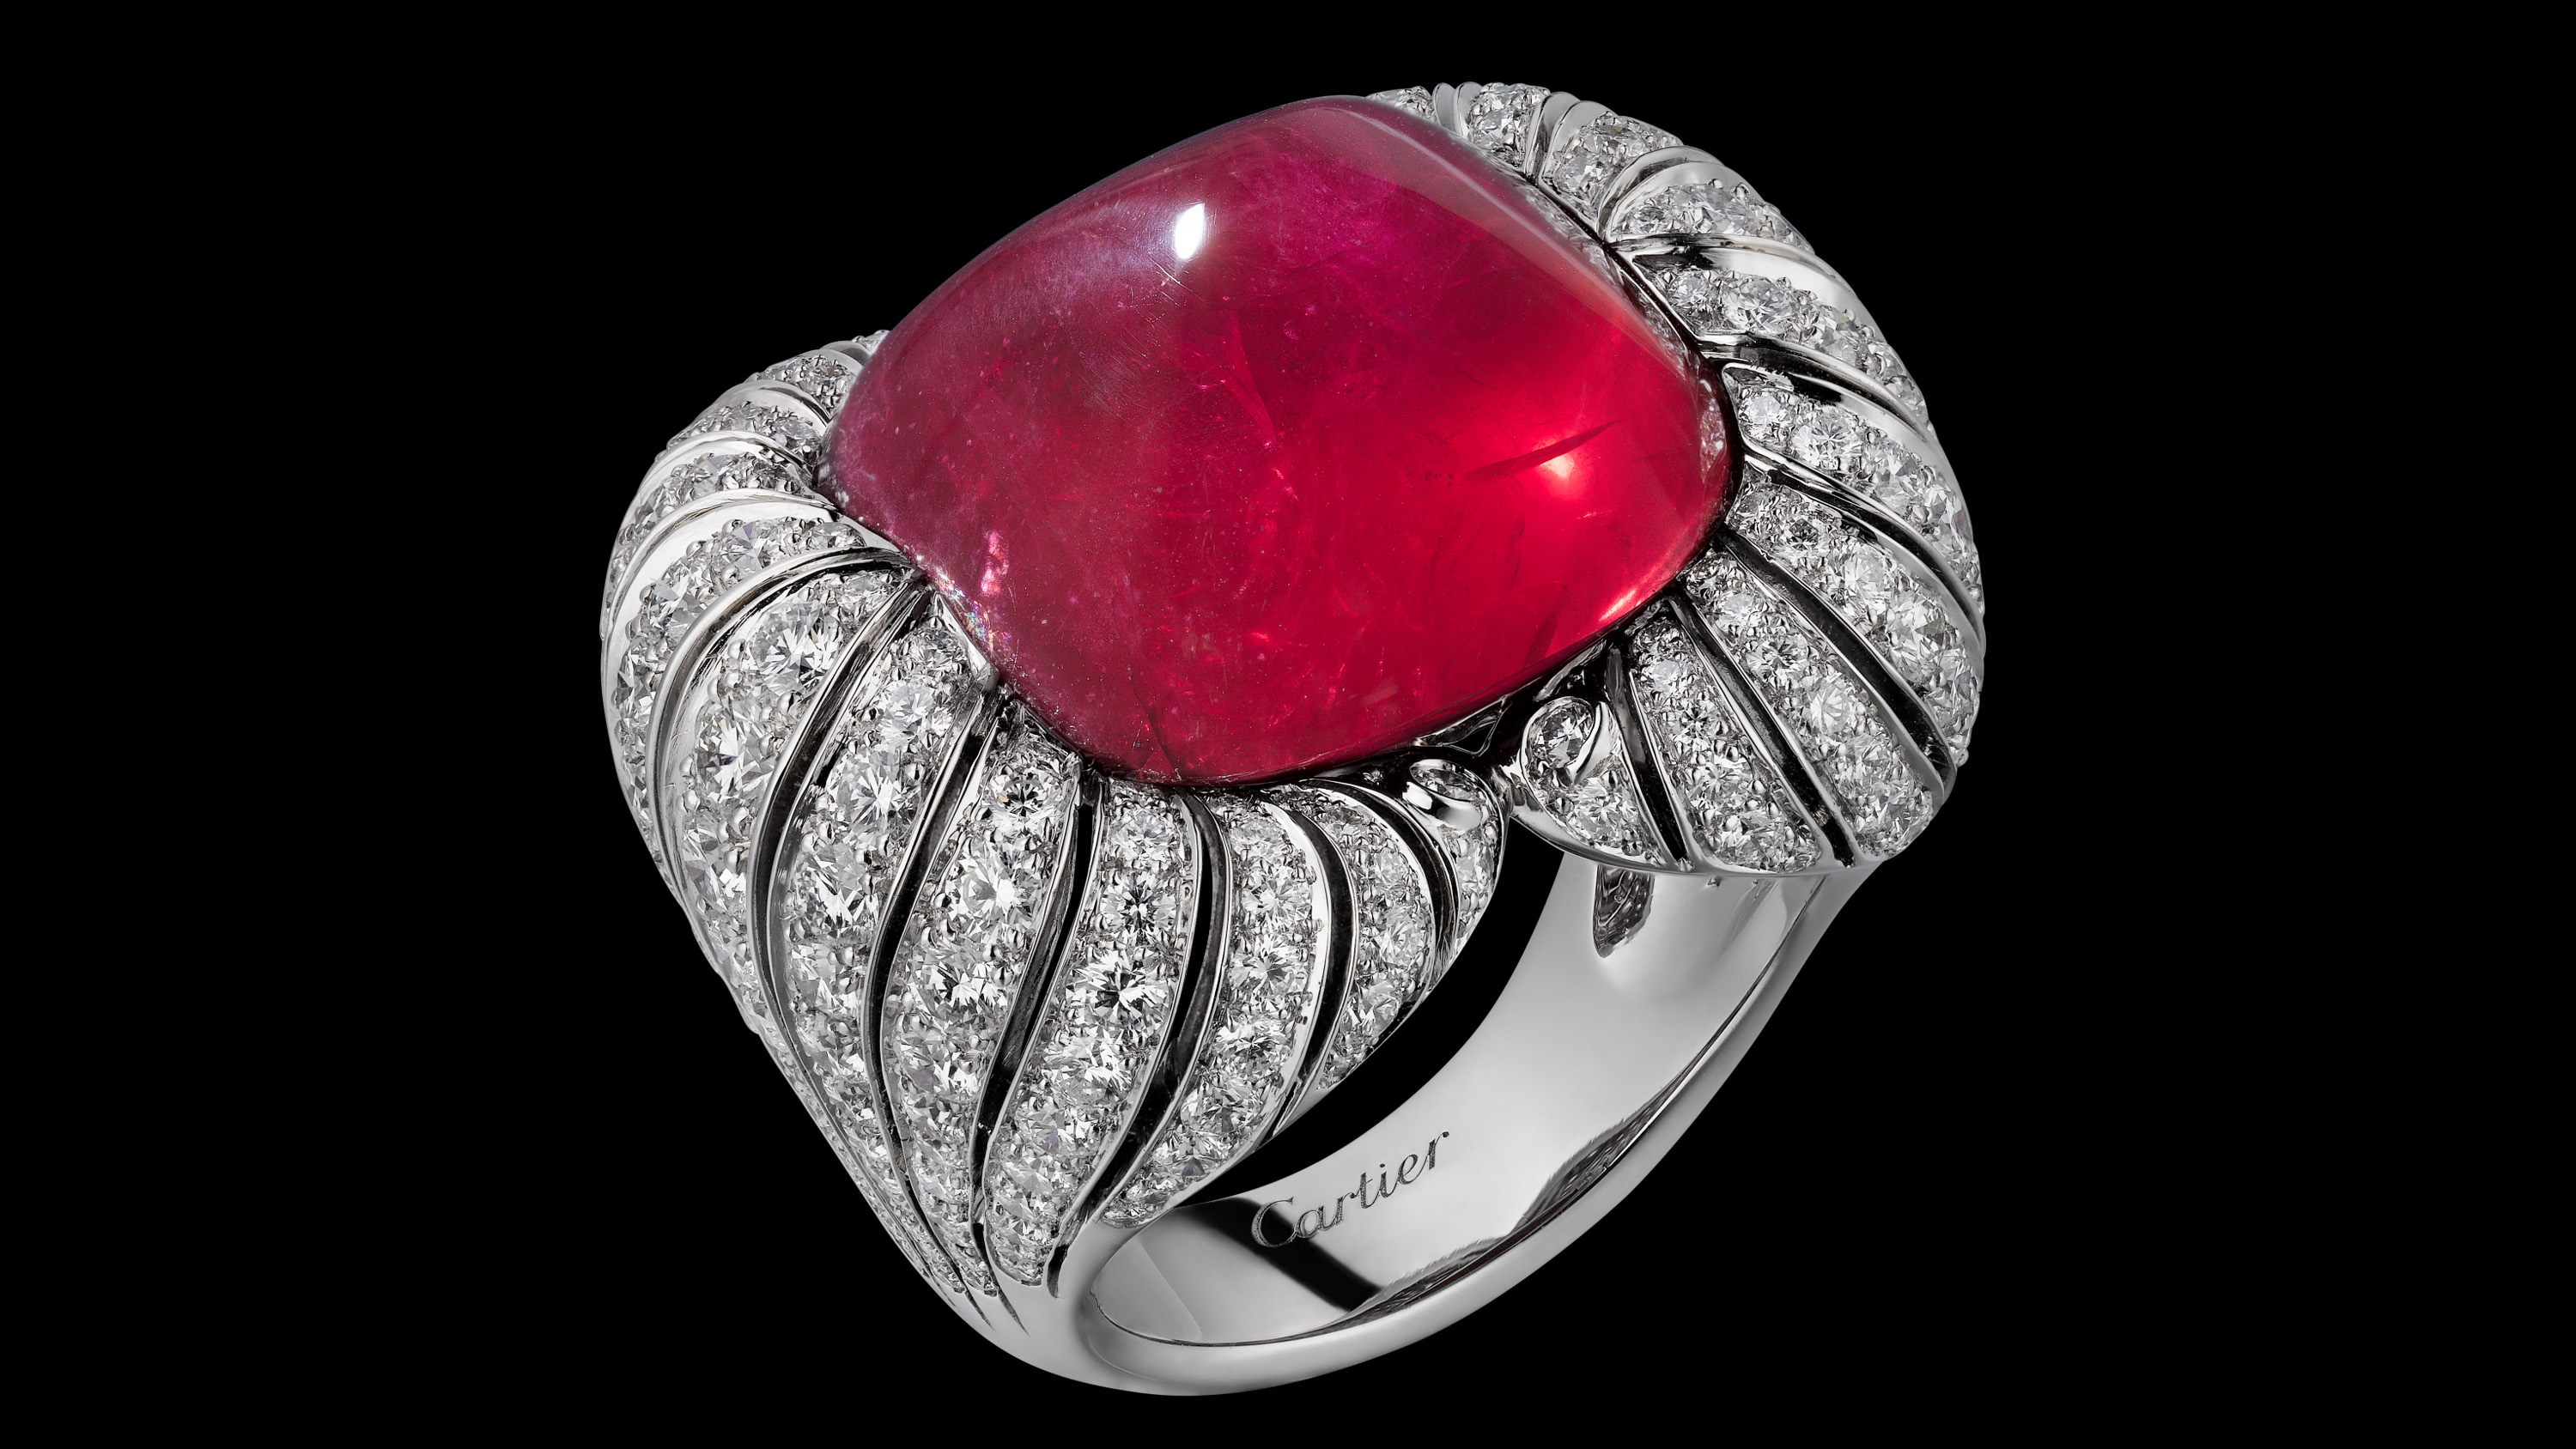 ottoman ruby one semi handmade ring precious gemstone hands rings stone